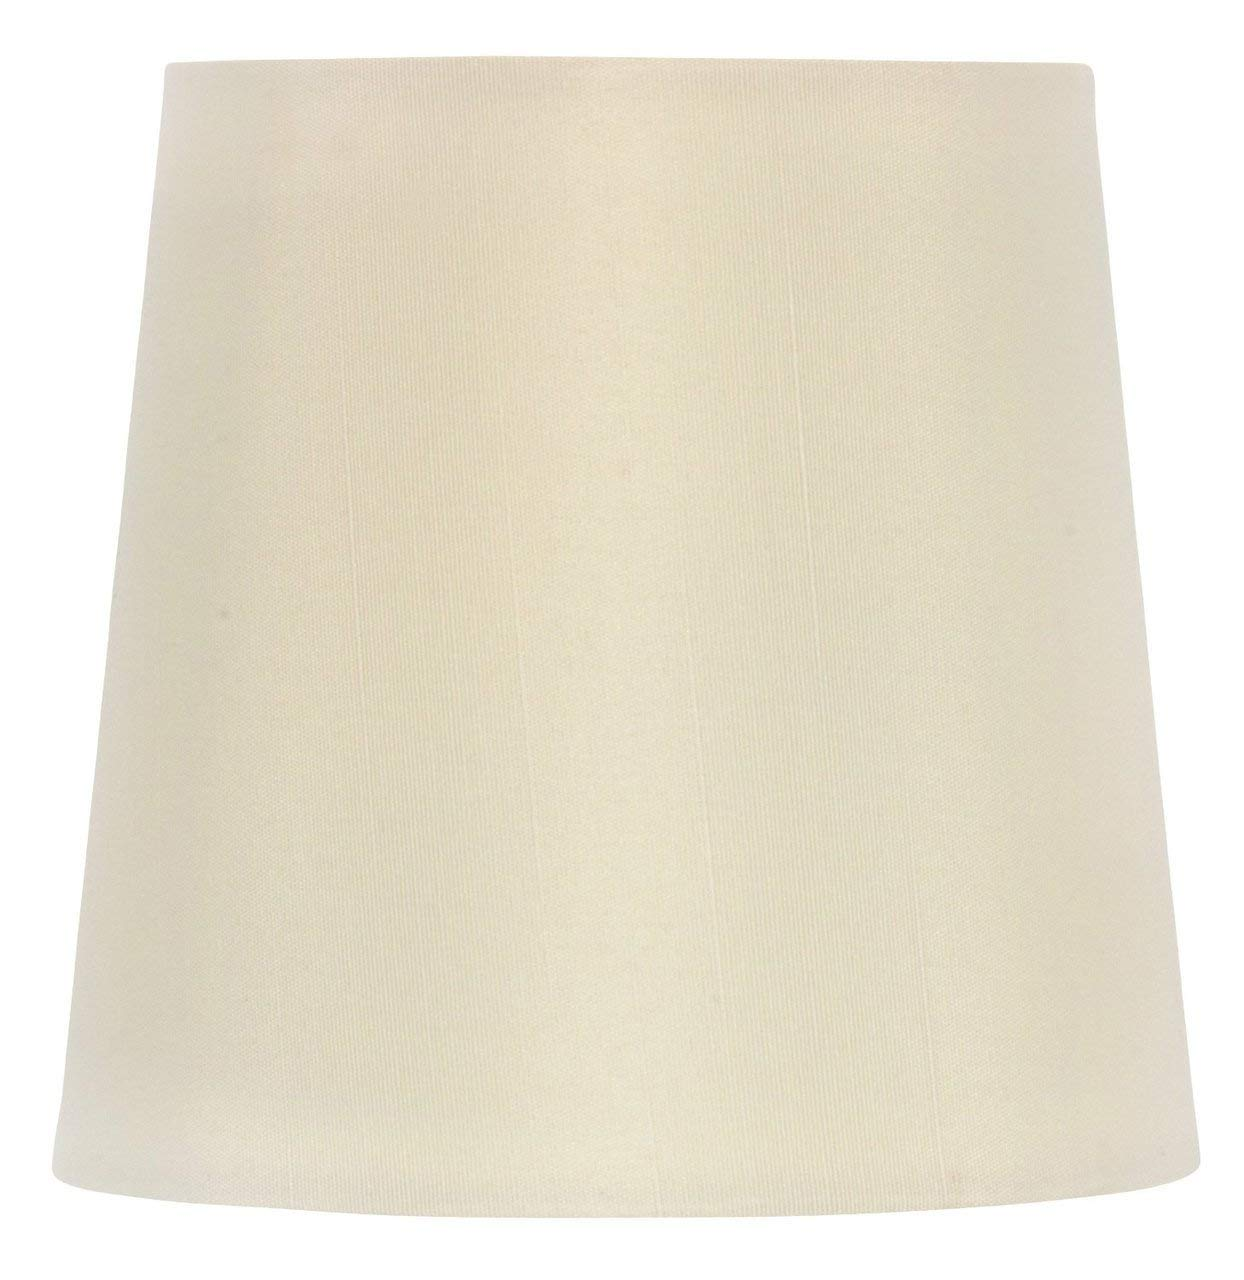 Upgradelights 4 Inch Retro Drum Clip On Chandelier Lamp Shade in Eggshell Silk (3x4x4)